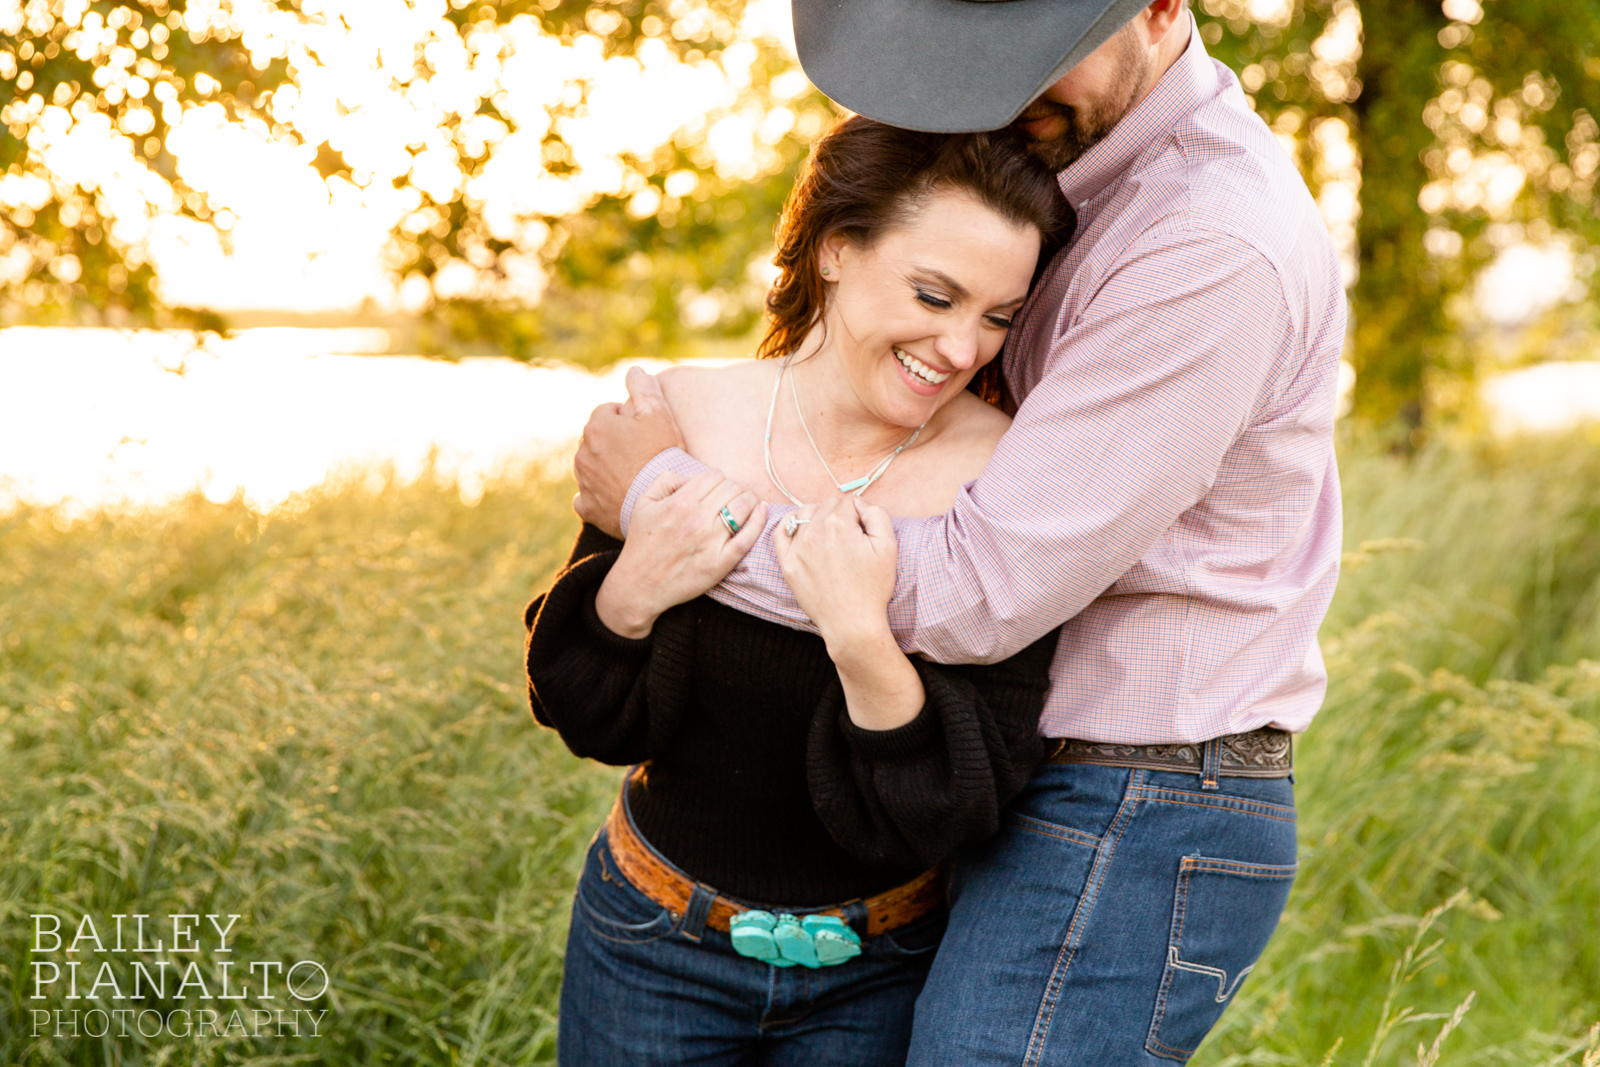 Turquoise & Black At-Home Countryside Cowboy Spring Sunset Engagement Inspiration